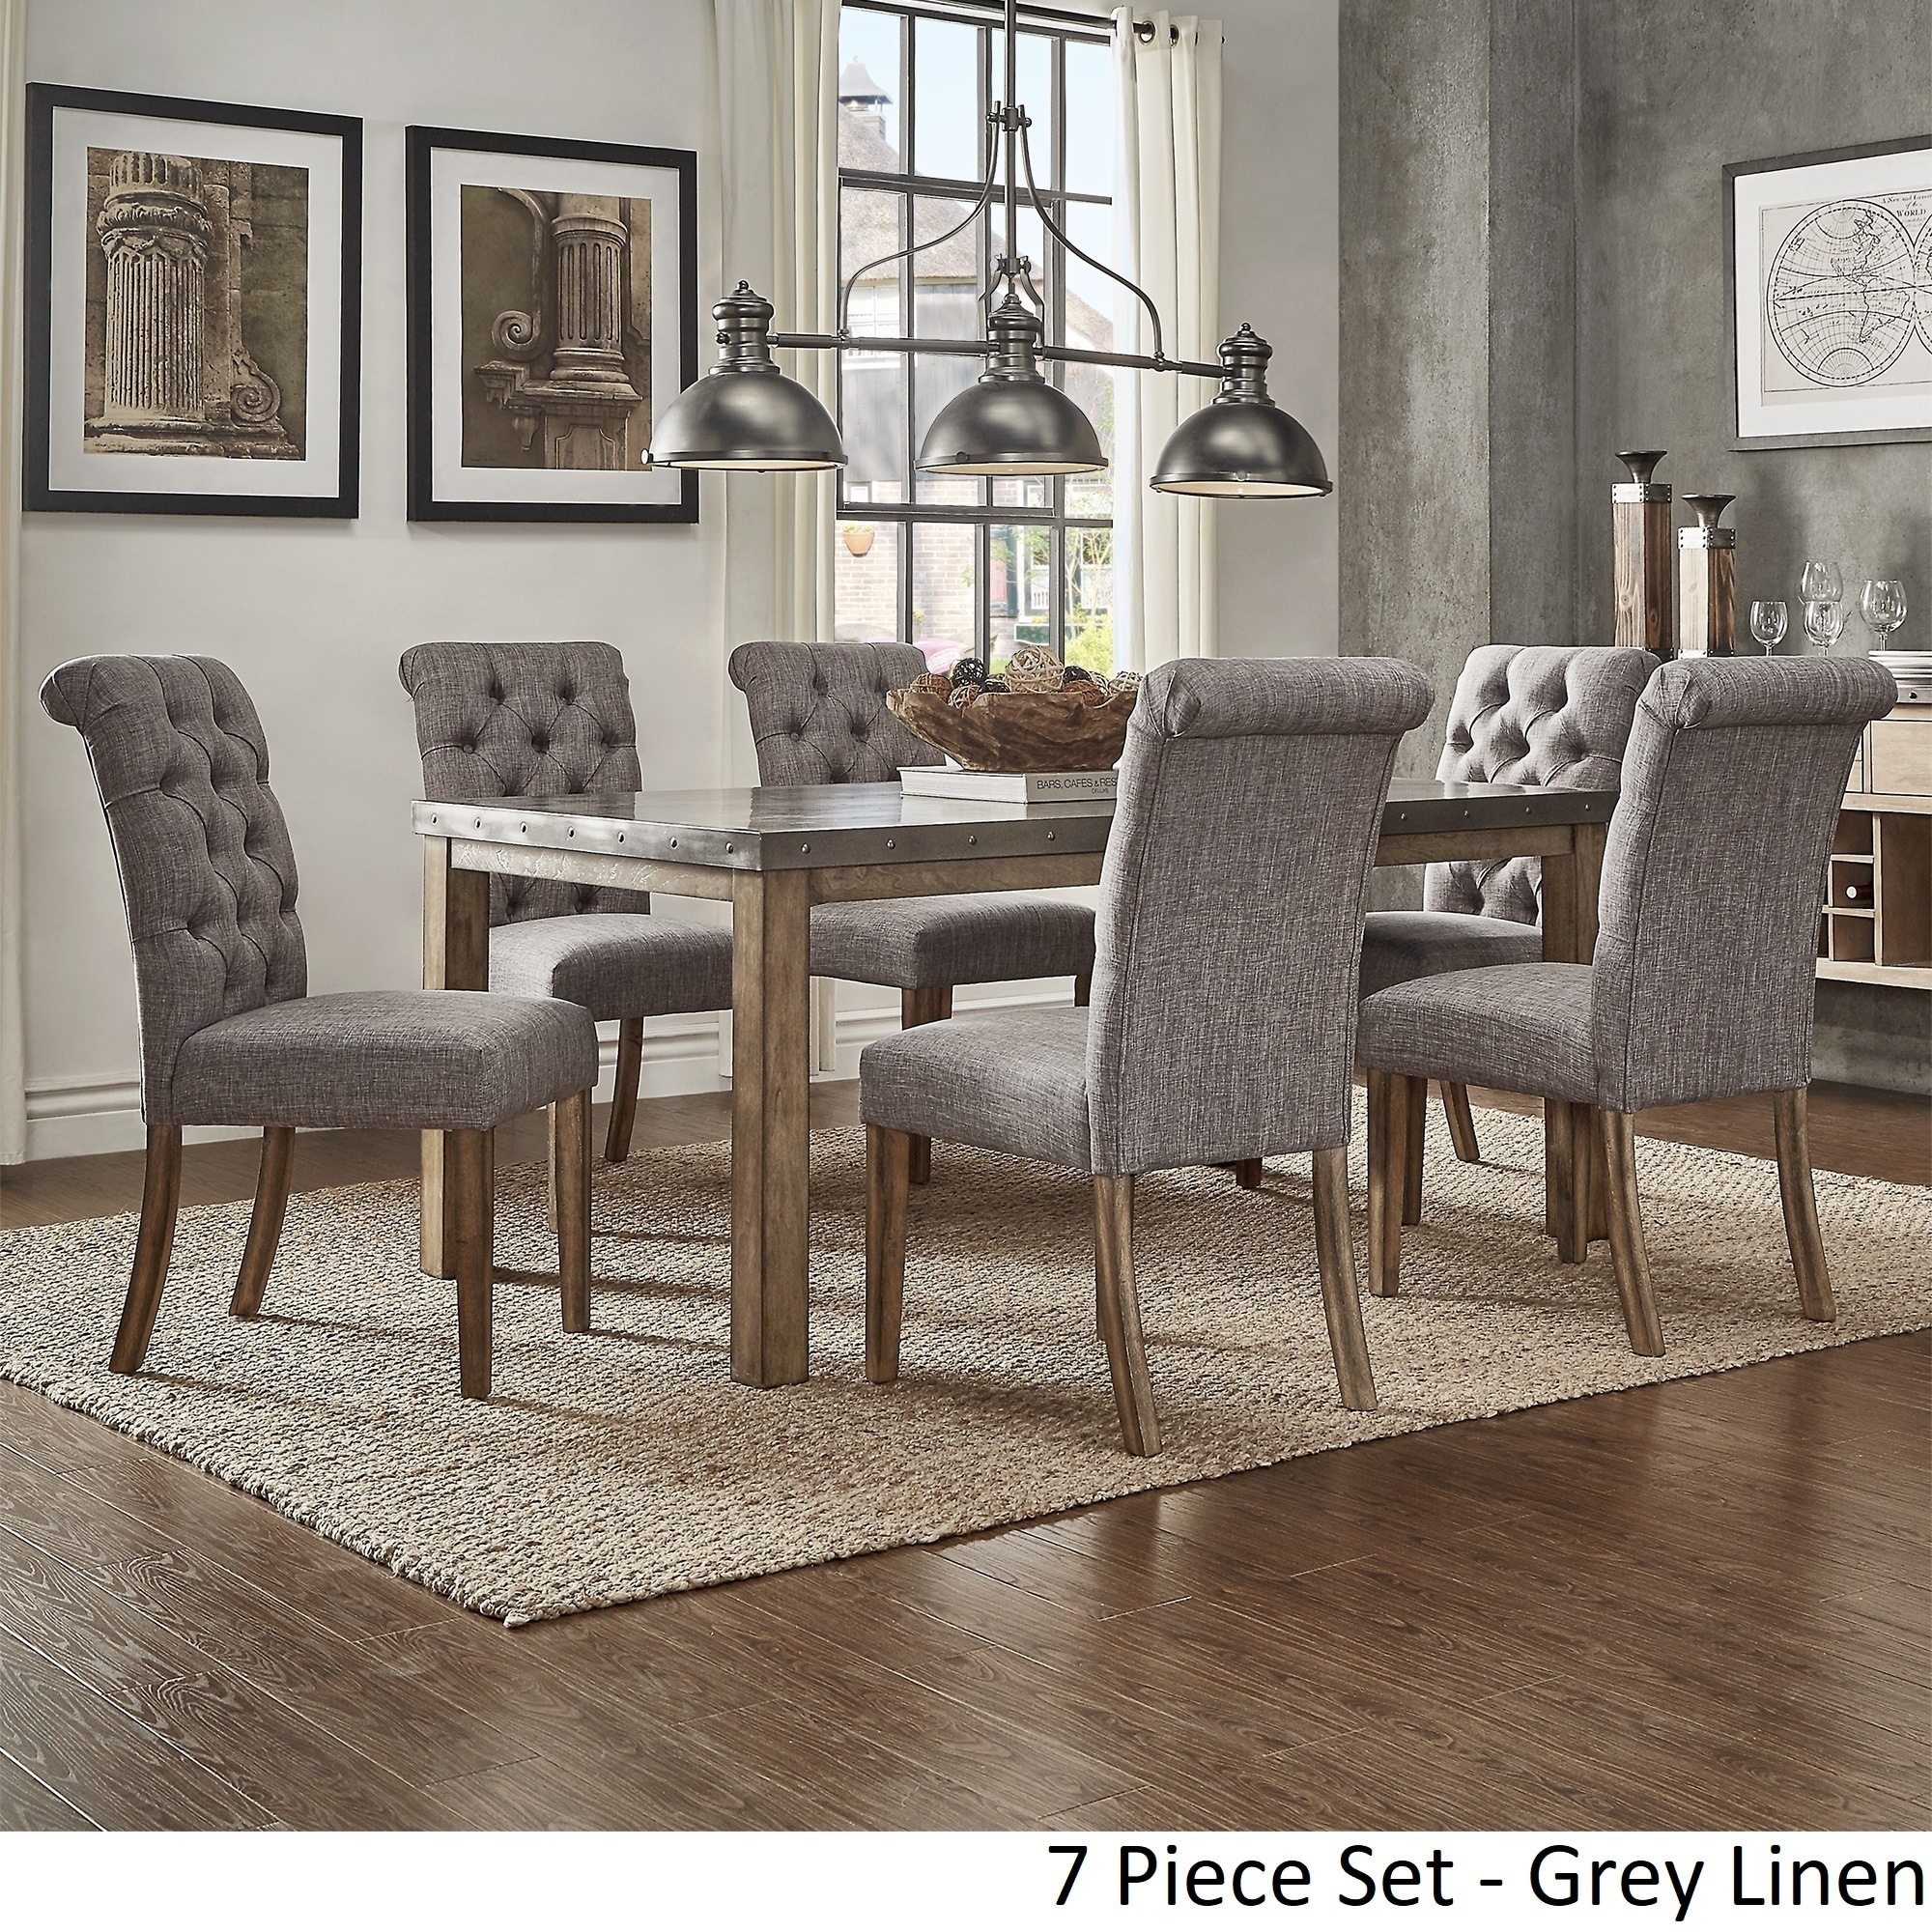 Shop cassidy stainless steel top rectangle dining table set by inspire q artisan on sale free shipping today overstock com 17239488